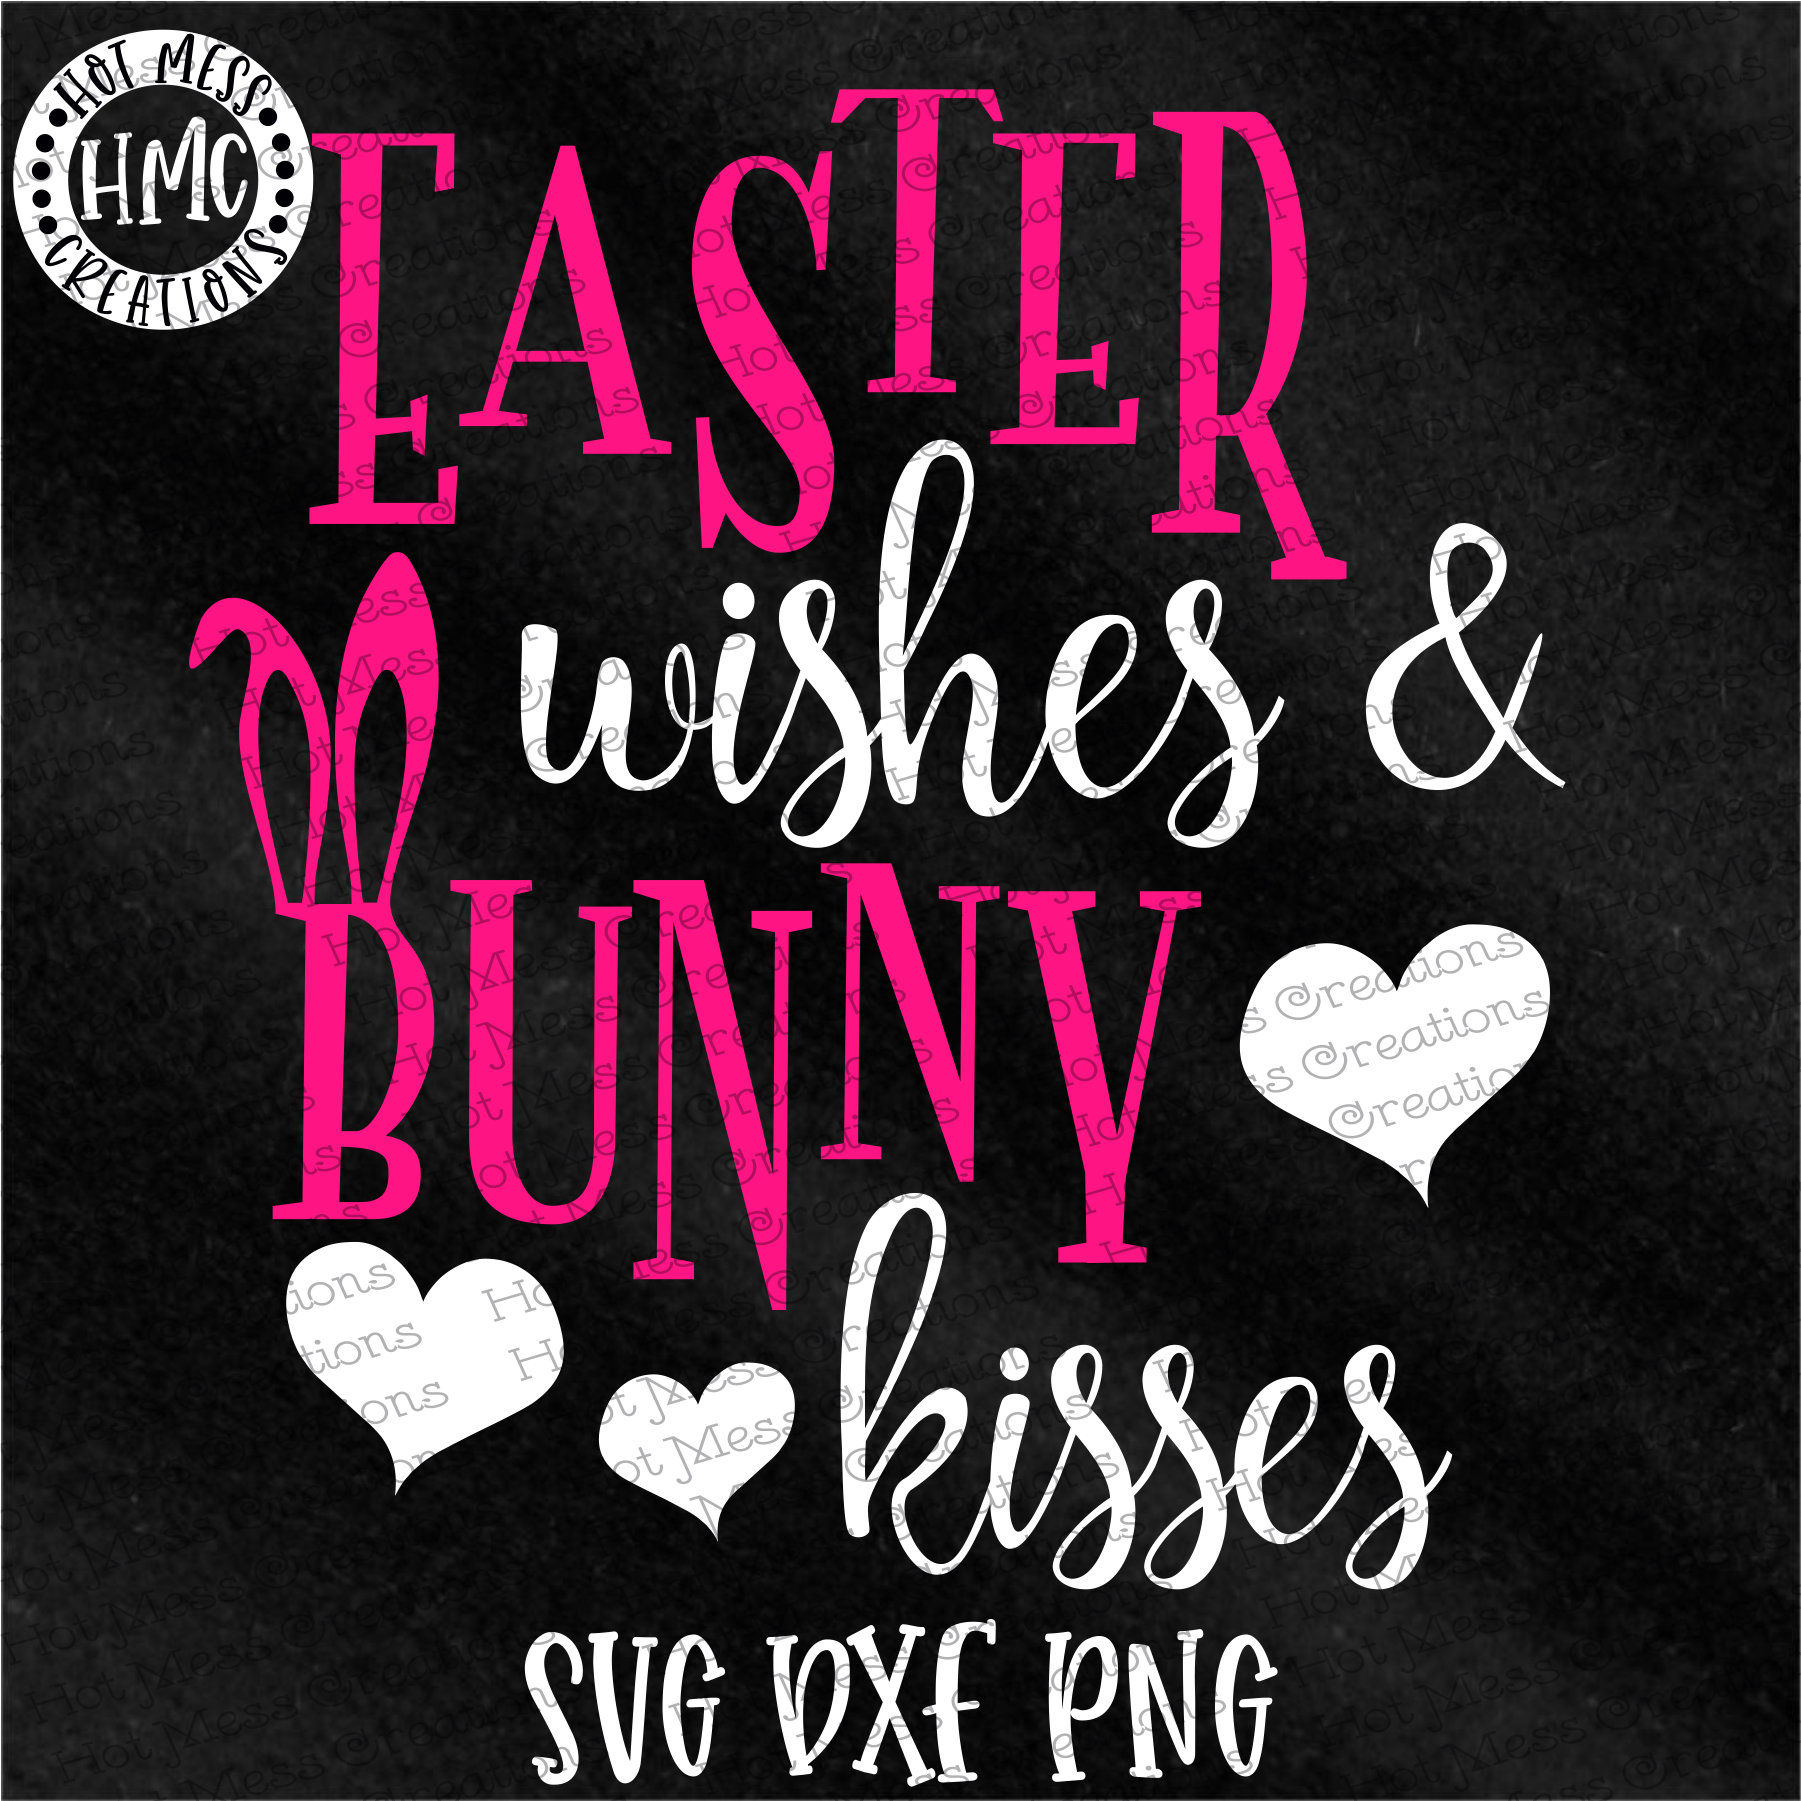 Easter Wishes Bunny Kisses Svg Dxf Eps Png Digital Download Easter Wishes Dxf Eps